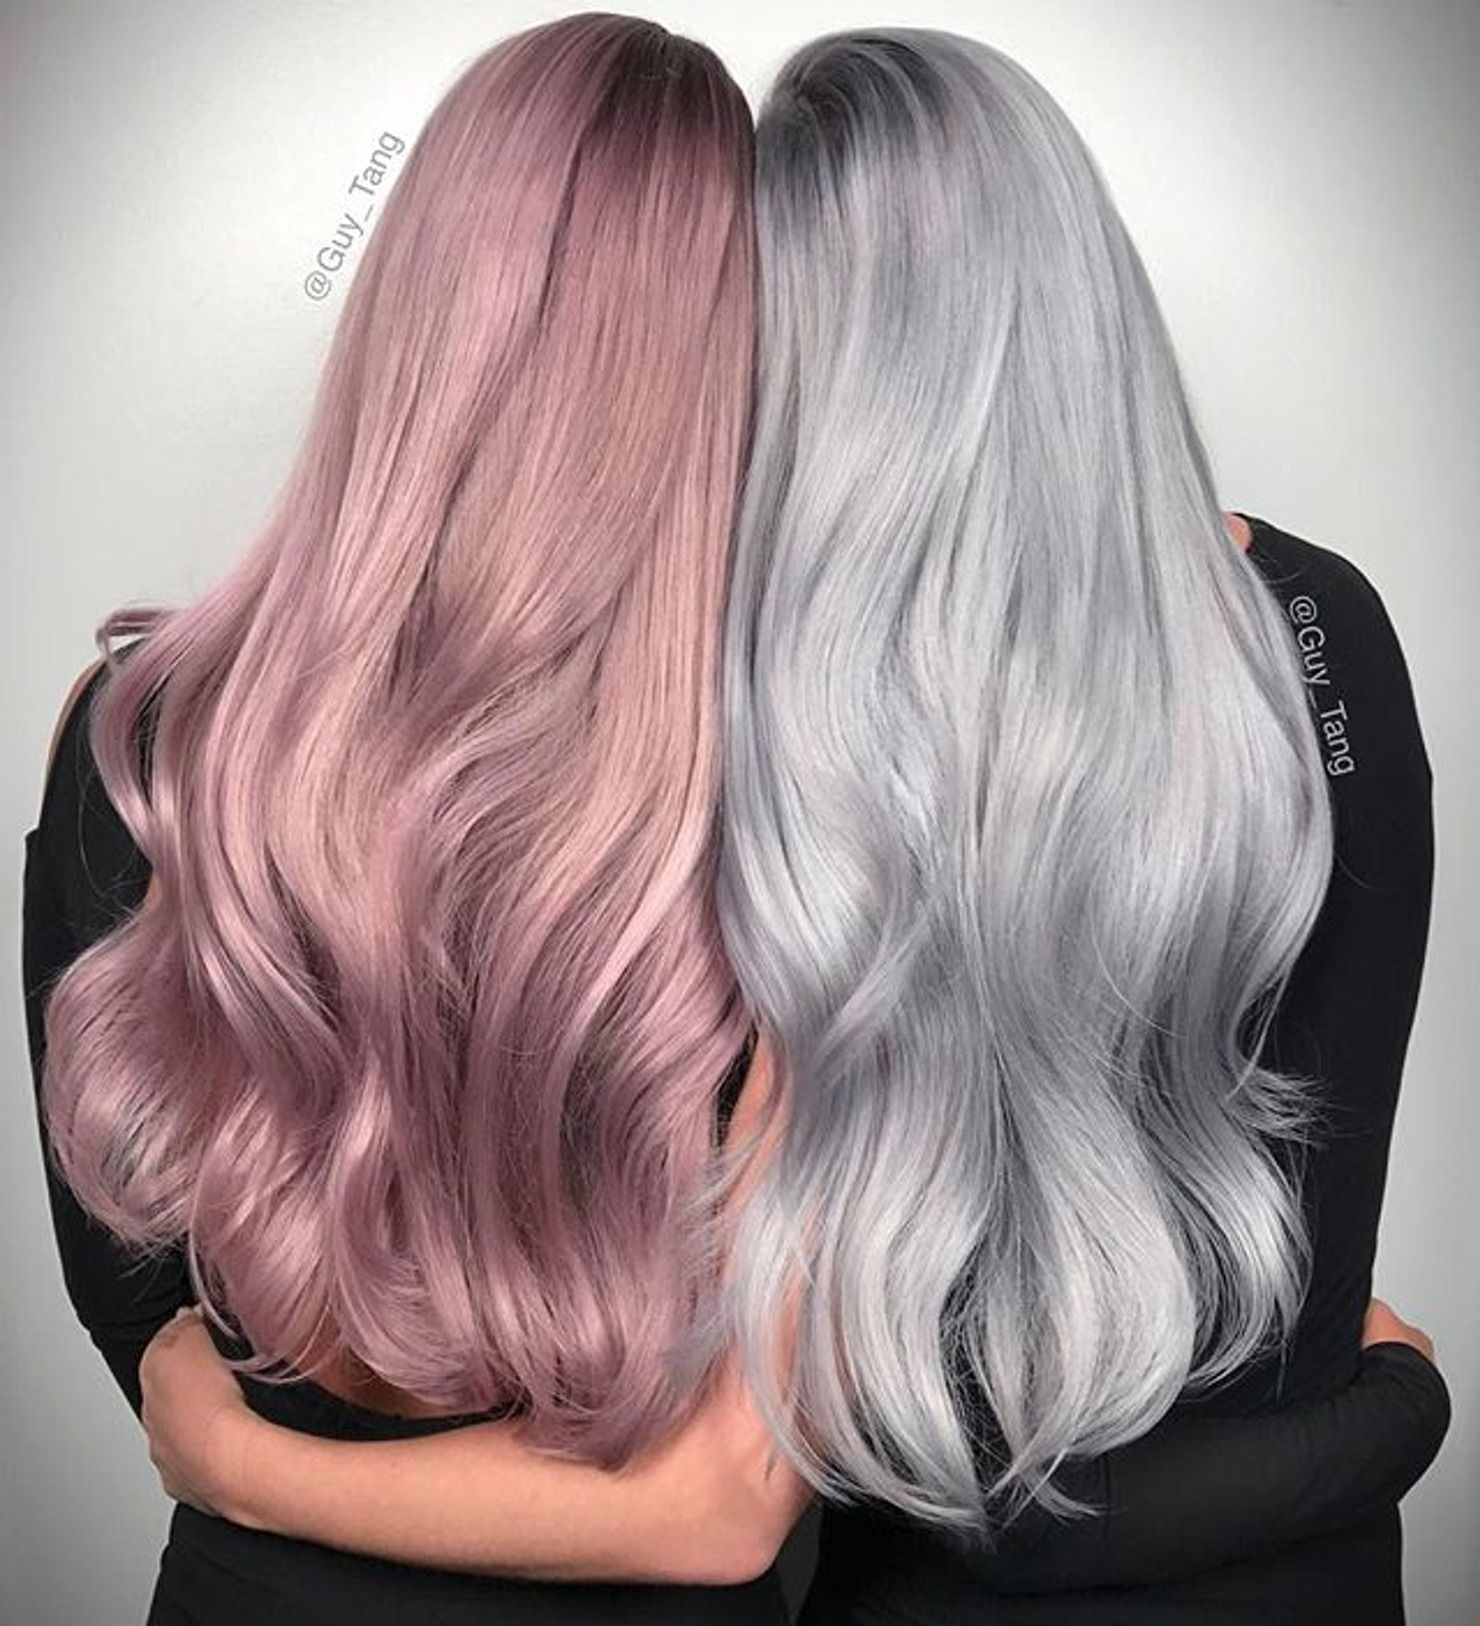 2020 New Gray Hair Wigs For African American Women Gray Hair Color Shades Silver Gray Lace Front Wigs Black And Gray Hair Asymmetrical Bob Wig Crochet Wig